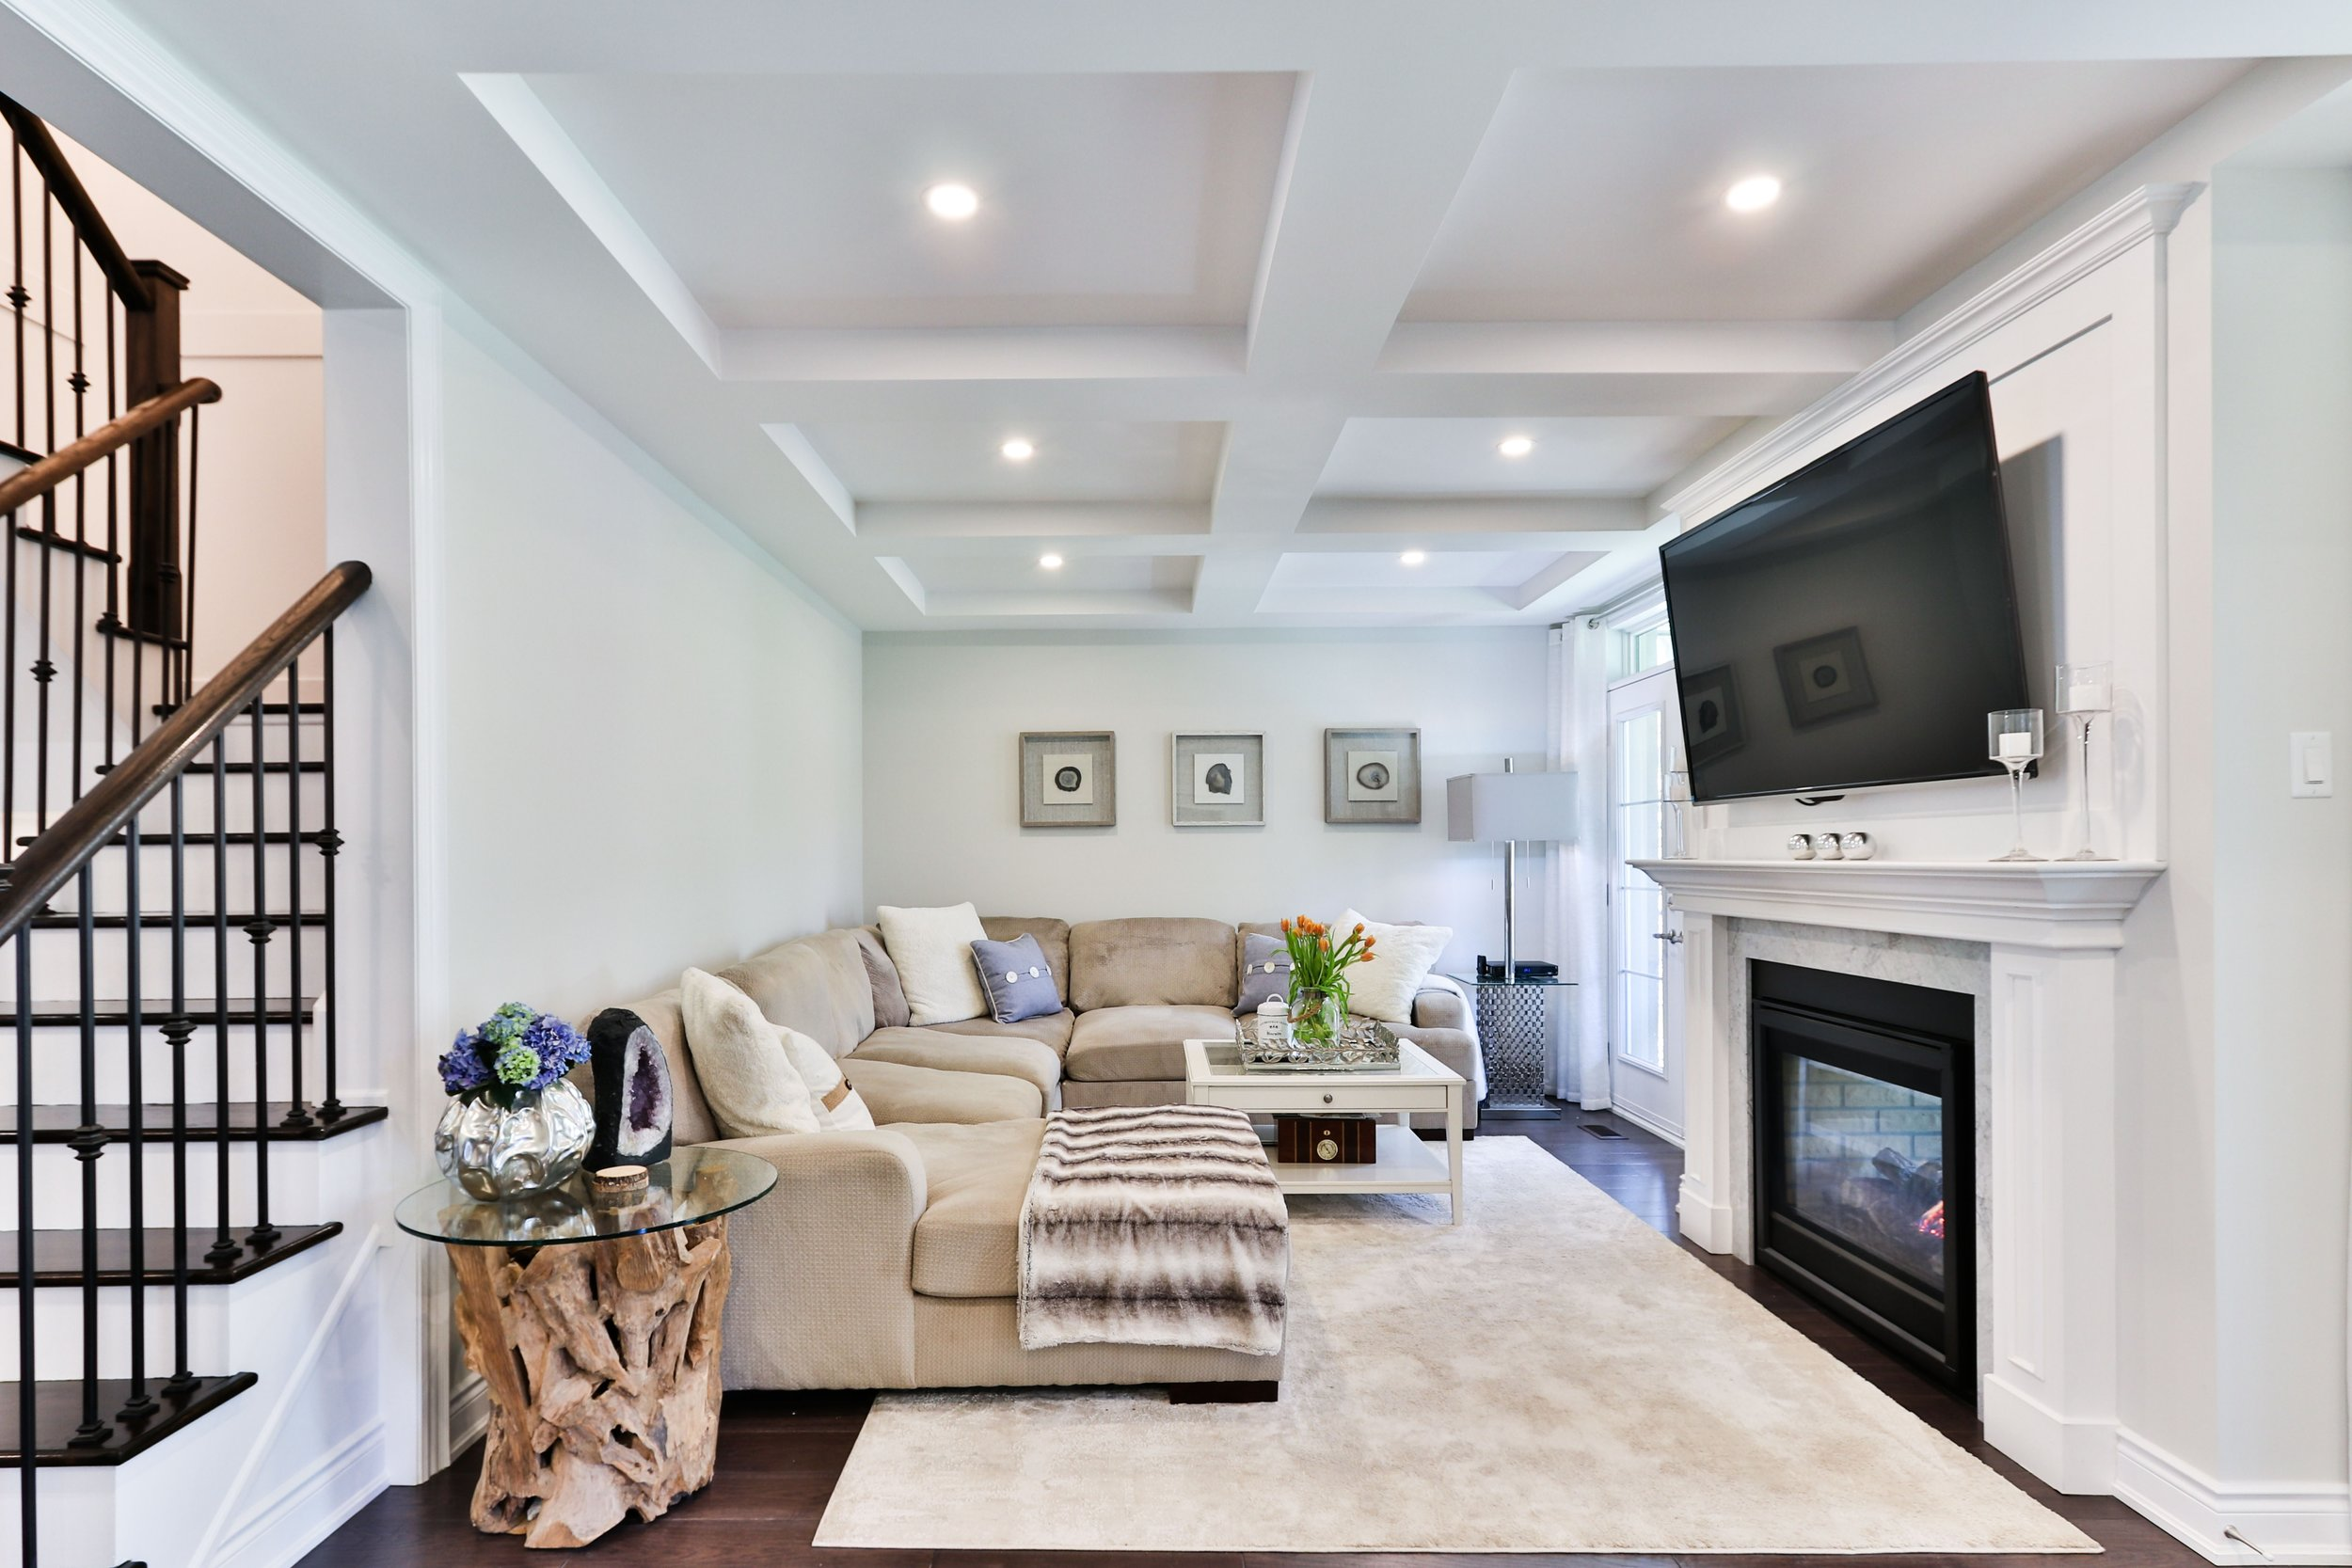 BIZ-LOCATION-real-life-interior-design-compared-to-reality-tv-family-room.jpg